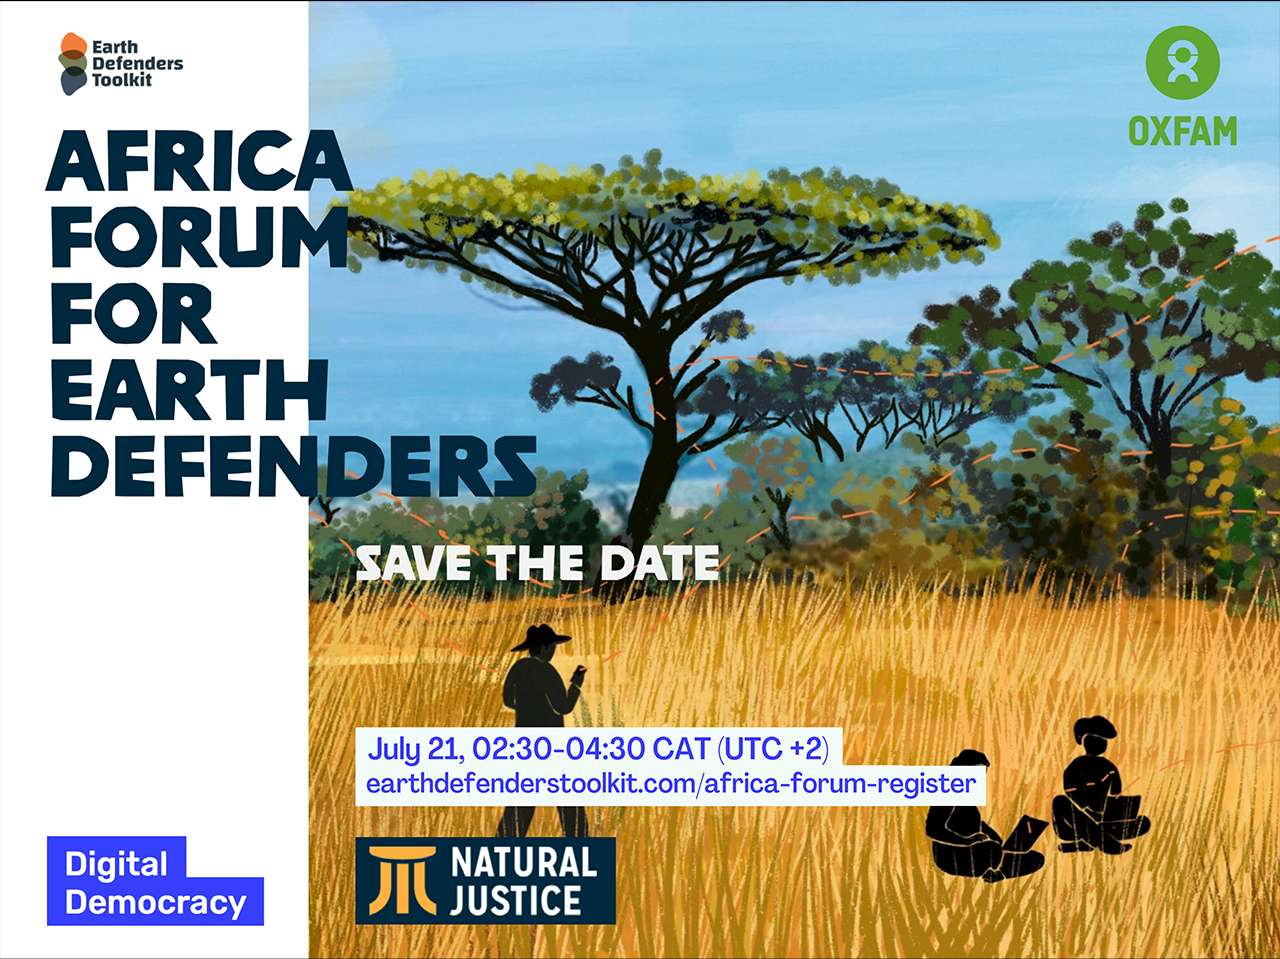 Africe forum for Earth Defenders July 21, 02:30-04:30 CAT